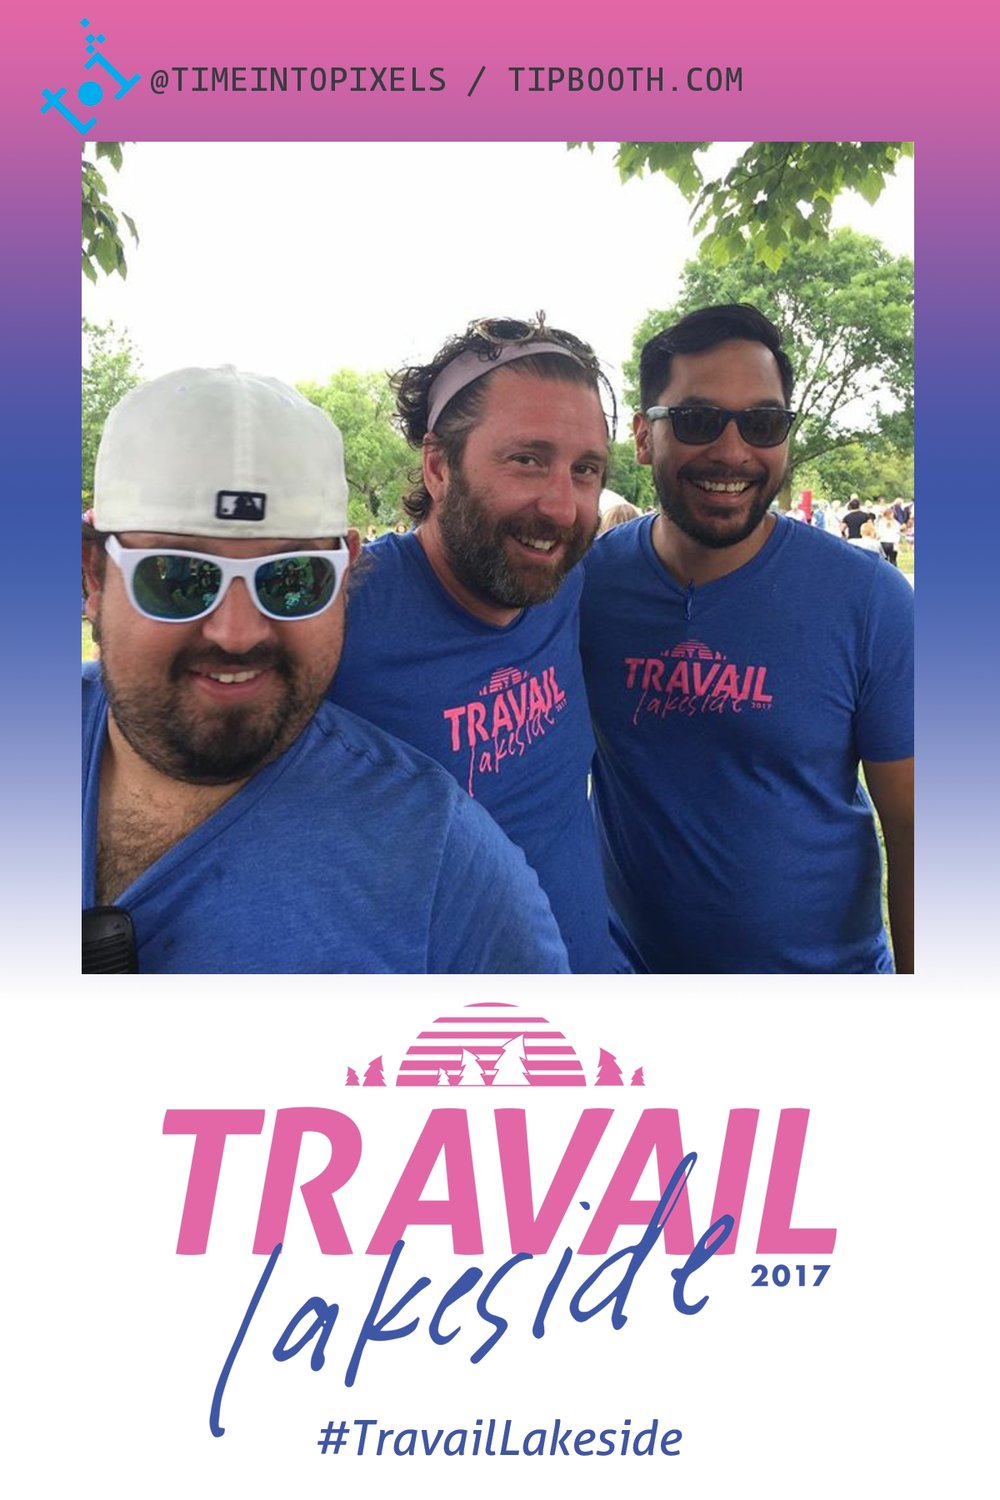 Post your photos to Instagram with the hashtag #travaillakeside and pick up a free printed version at the Time Into Pixels booth!